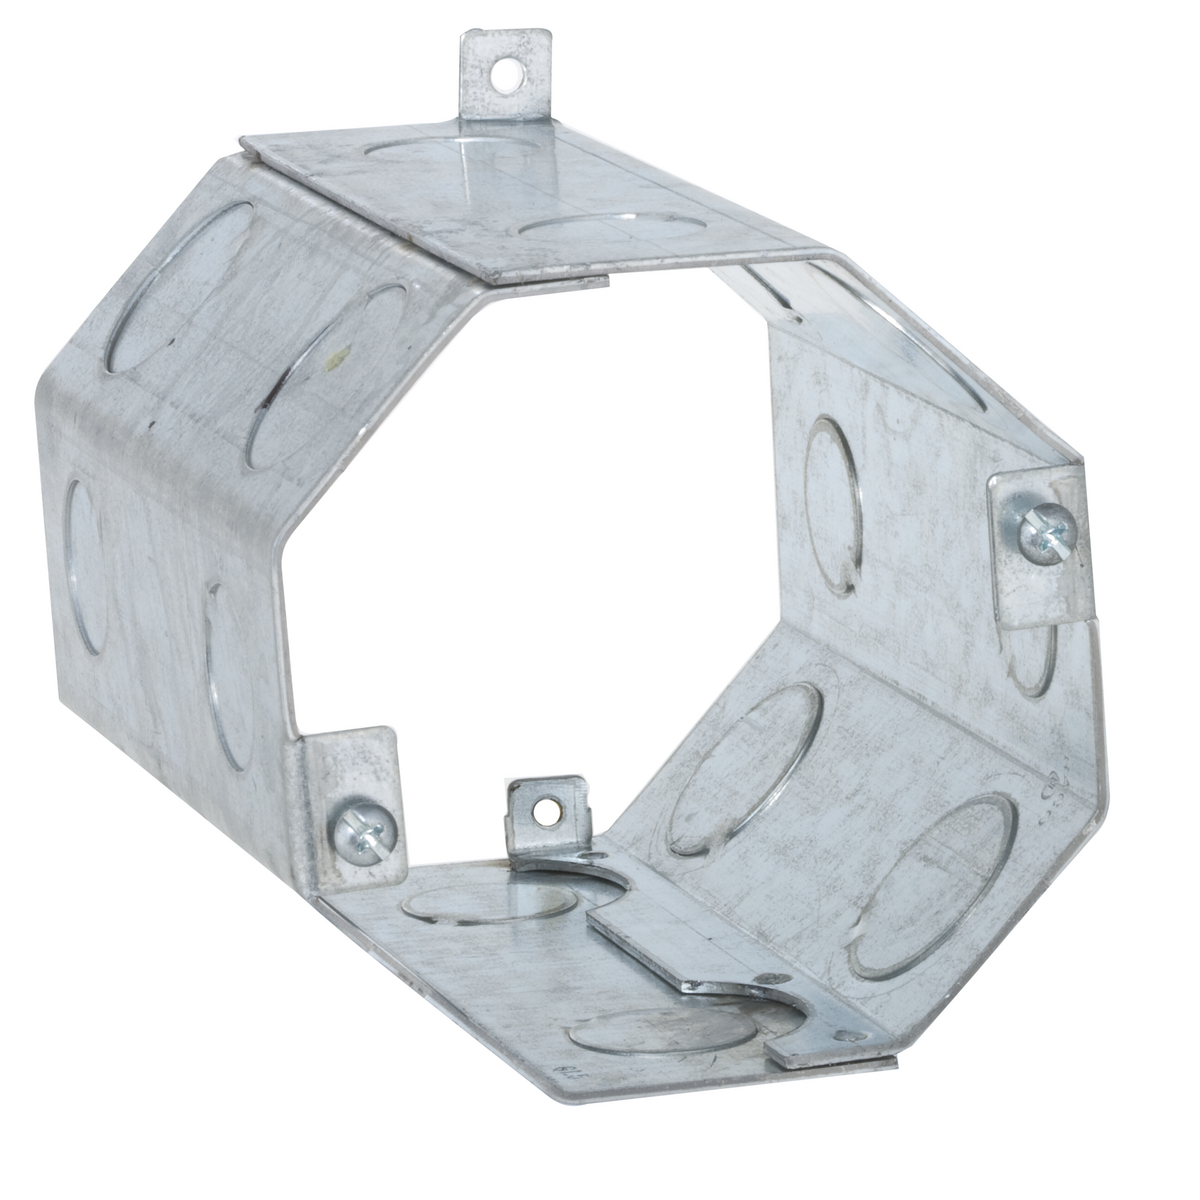 Hubbell-Raco 275 Concrete Ring